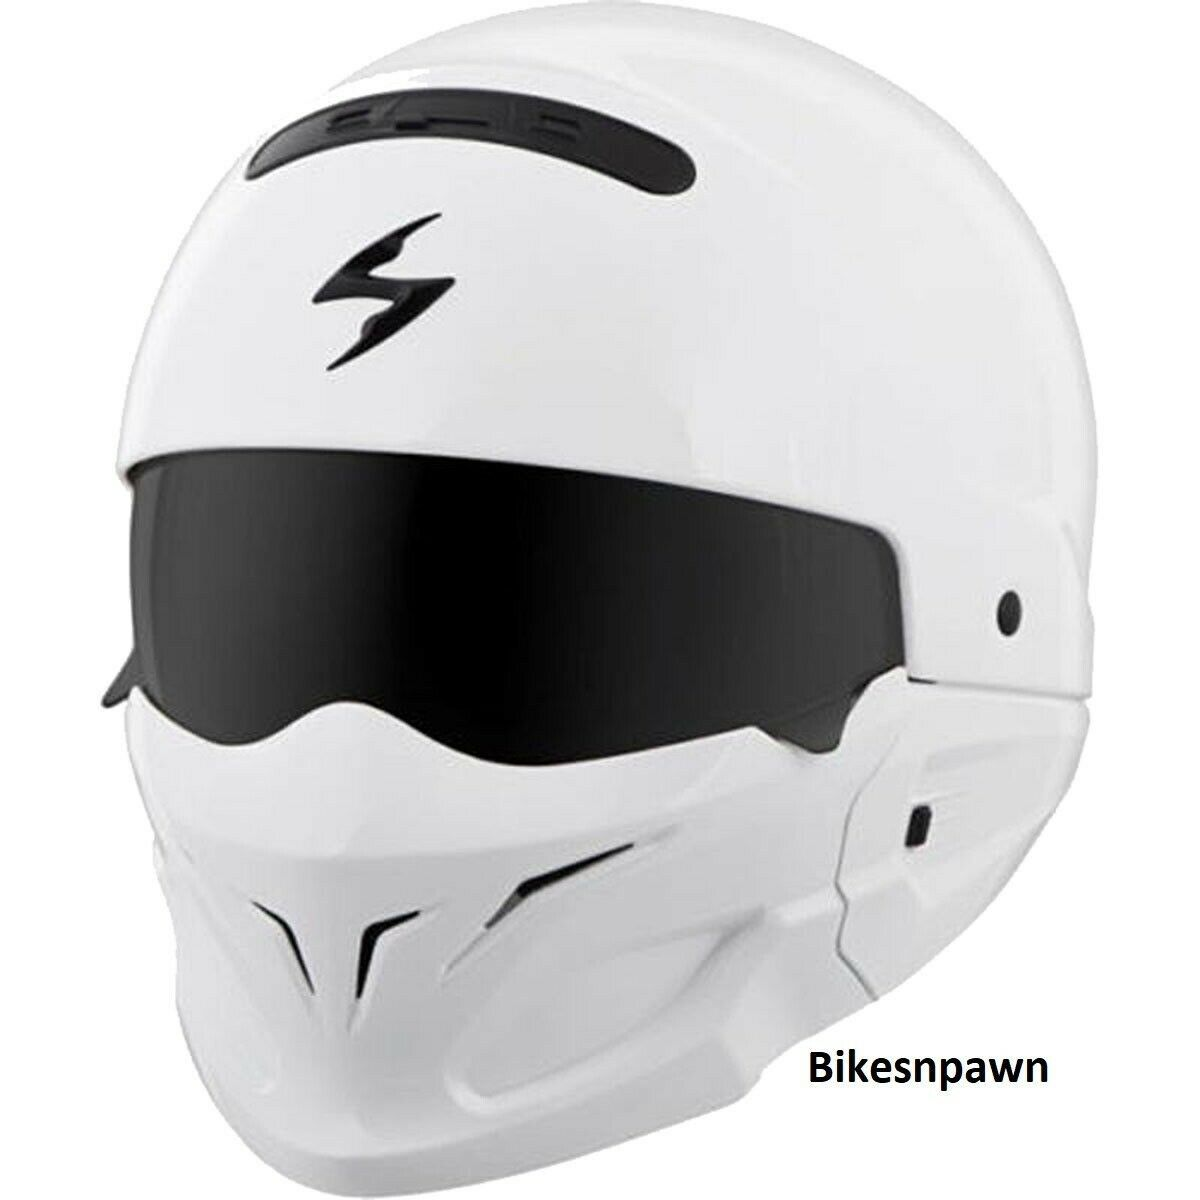 New Size XL Scorpion EXO Covert White 3 in 1 Motorcycle Helmet DOT